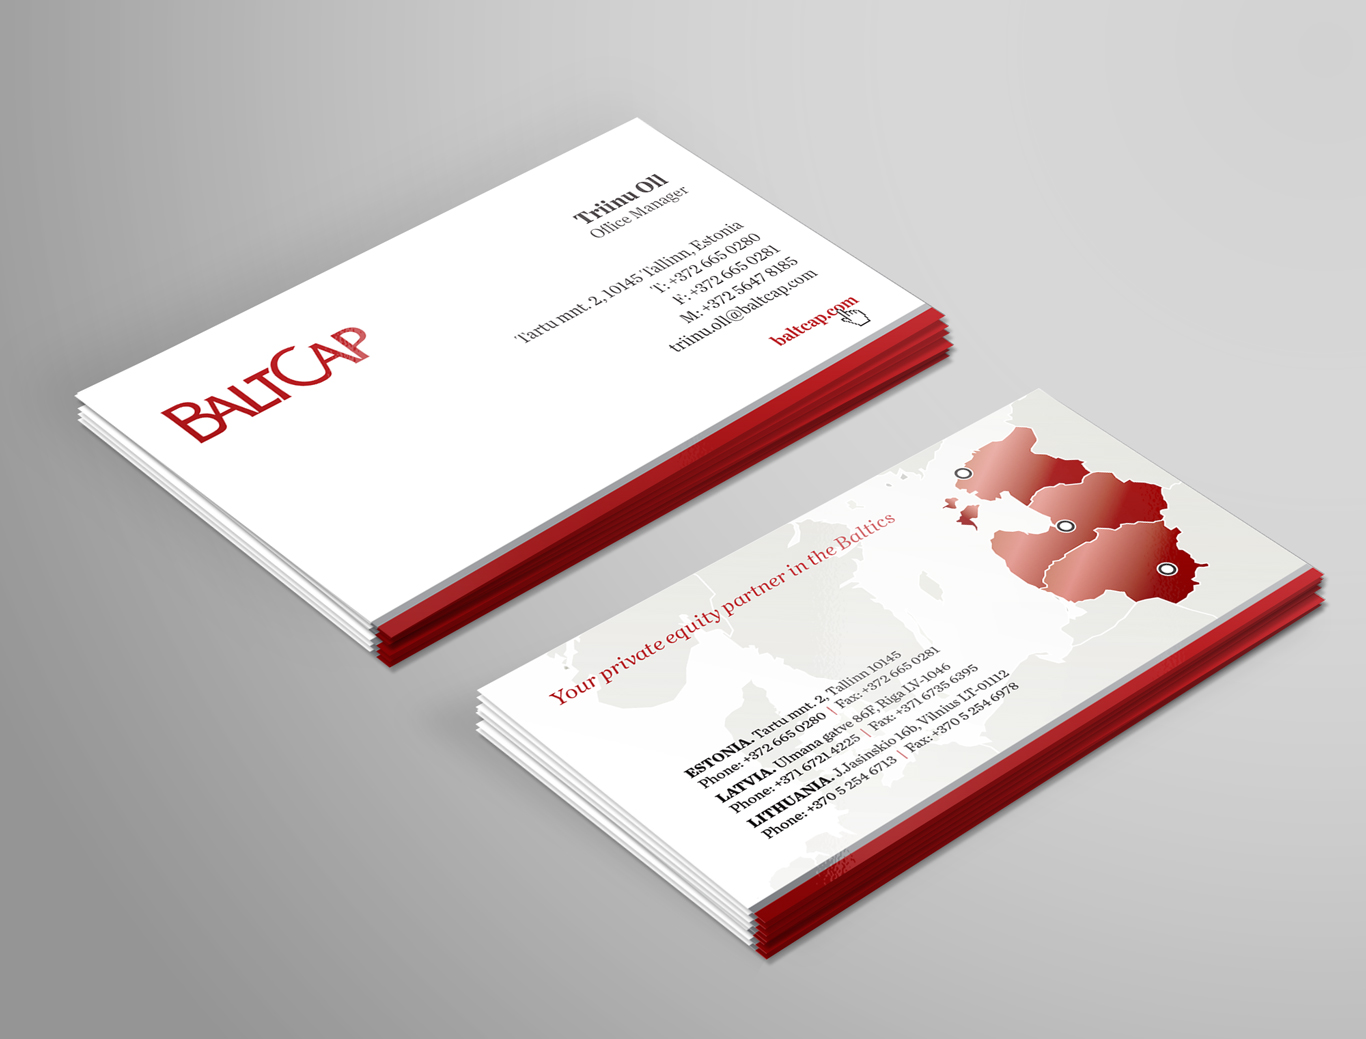 baltcap-Free-Business-Card-Mock-up-By_FaridMikayil